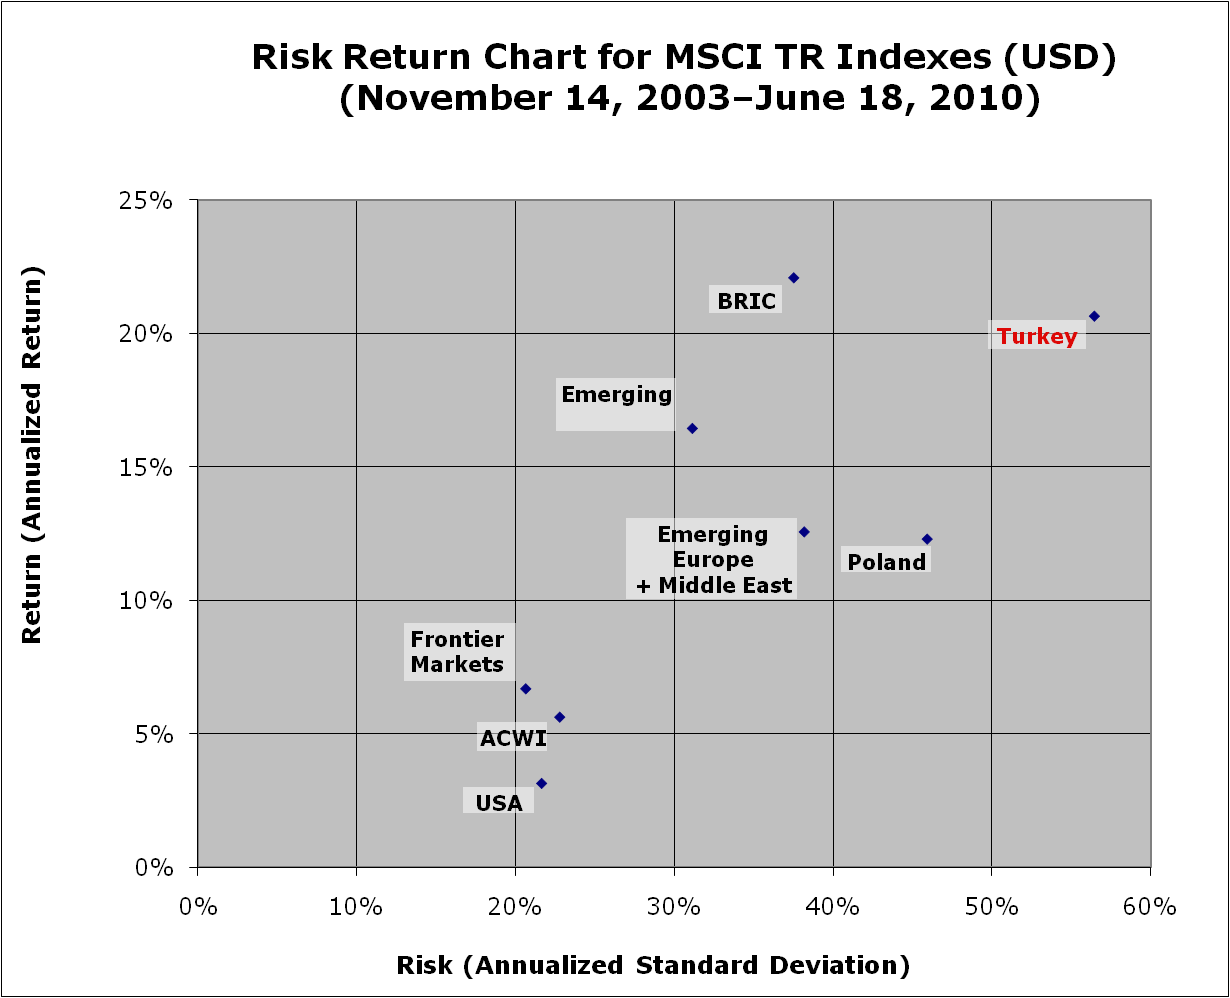 Risk Return Chart for MSCI TR Indexes (USD)